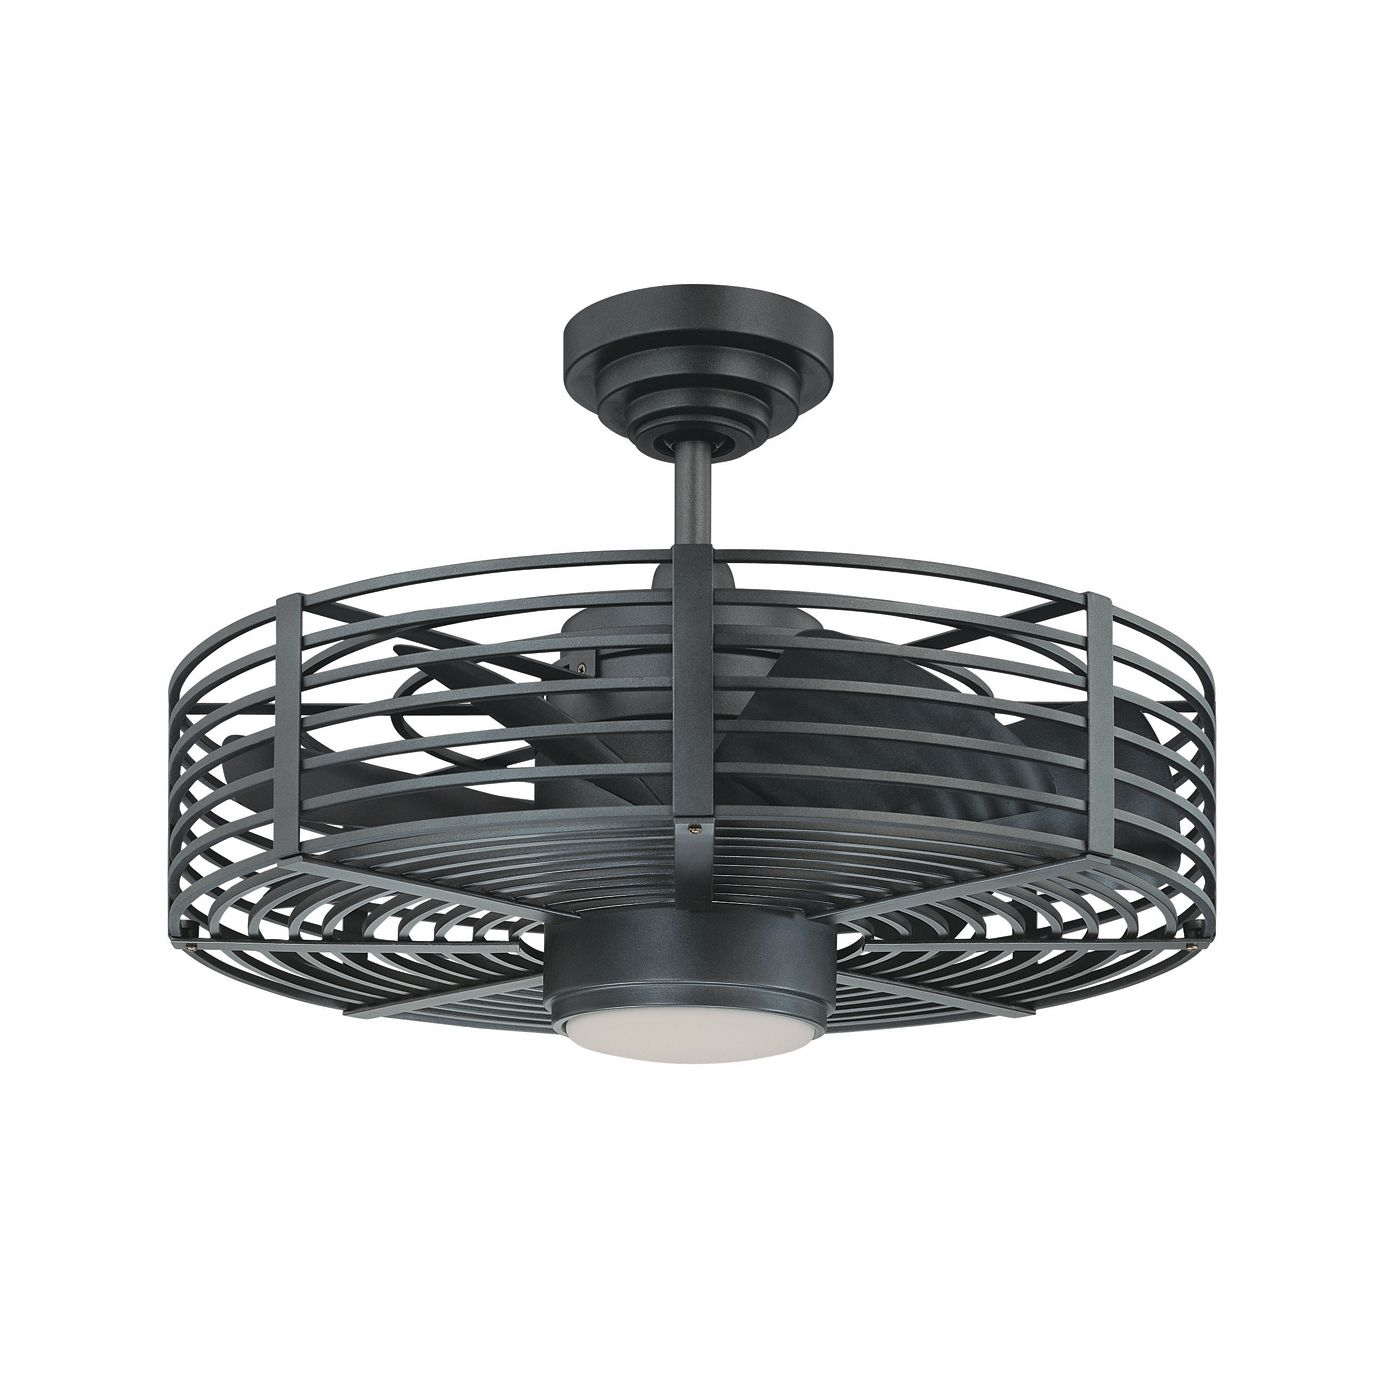 Kendal Lighting AC17723NI Enclave Ceiling Fan ATG